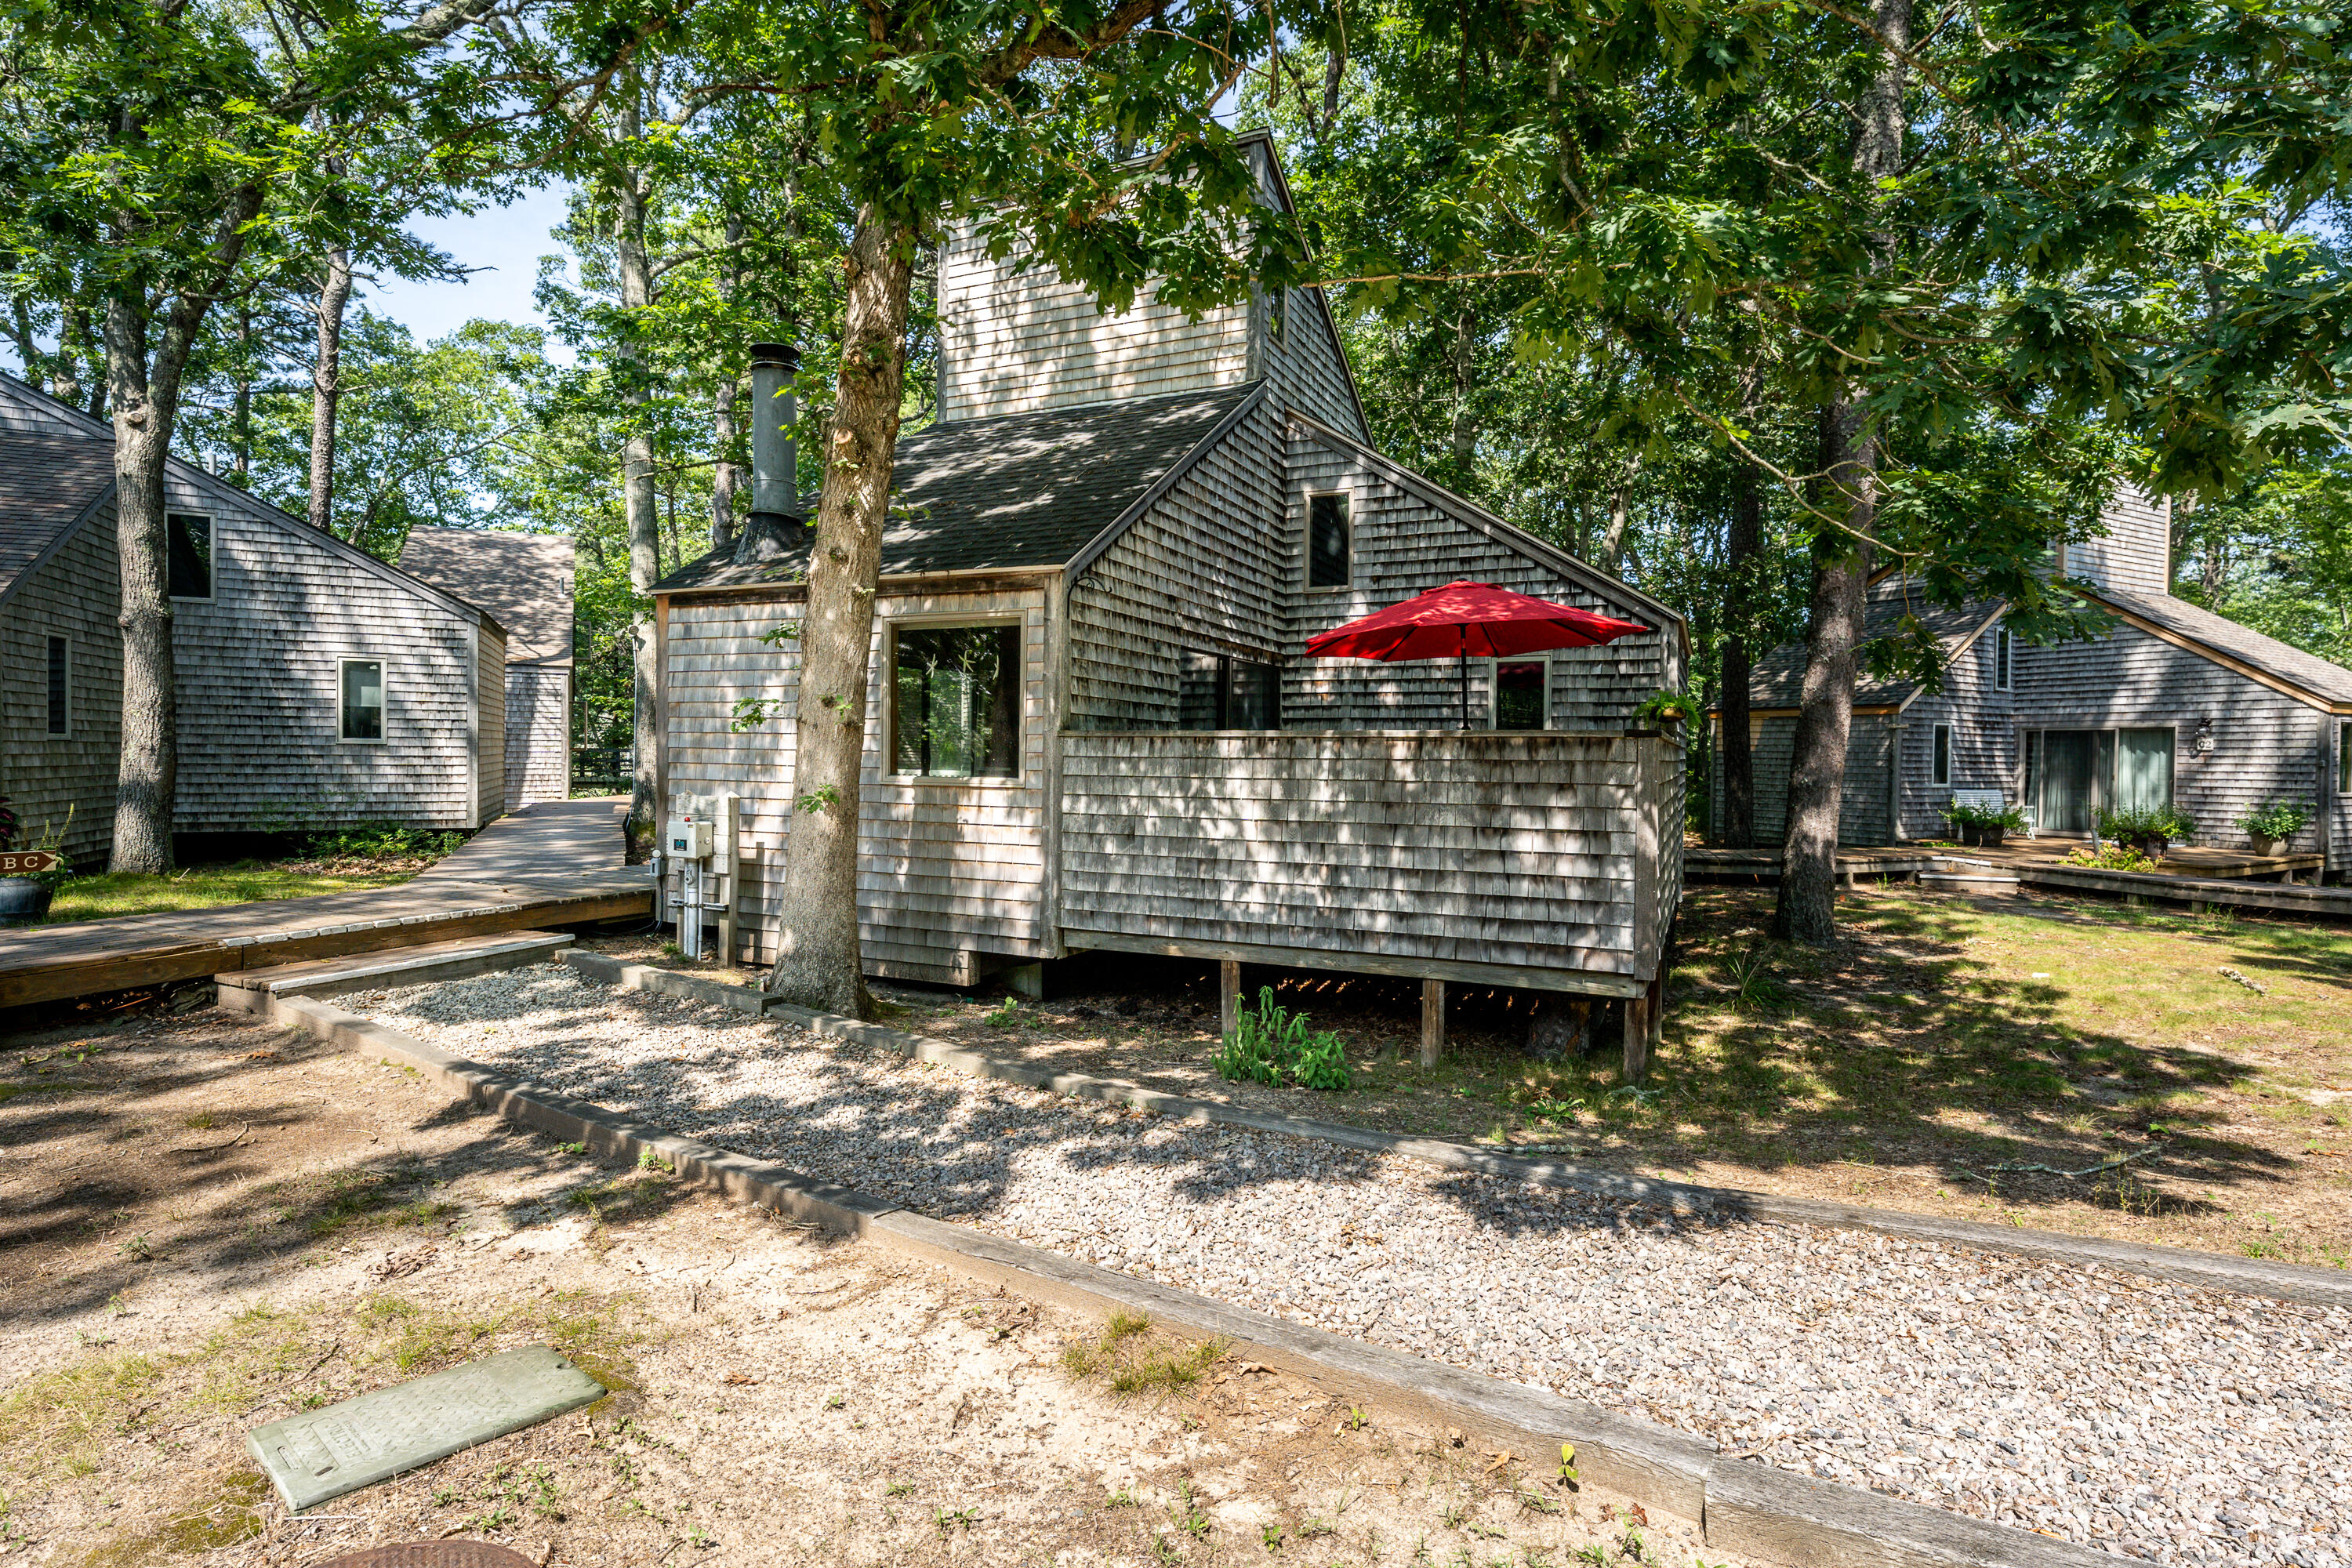 1780 State Highway Route 6 Wellfleet MA, 02667 details